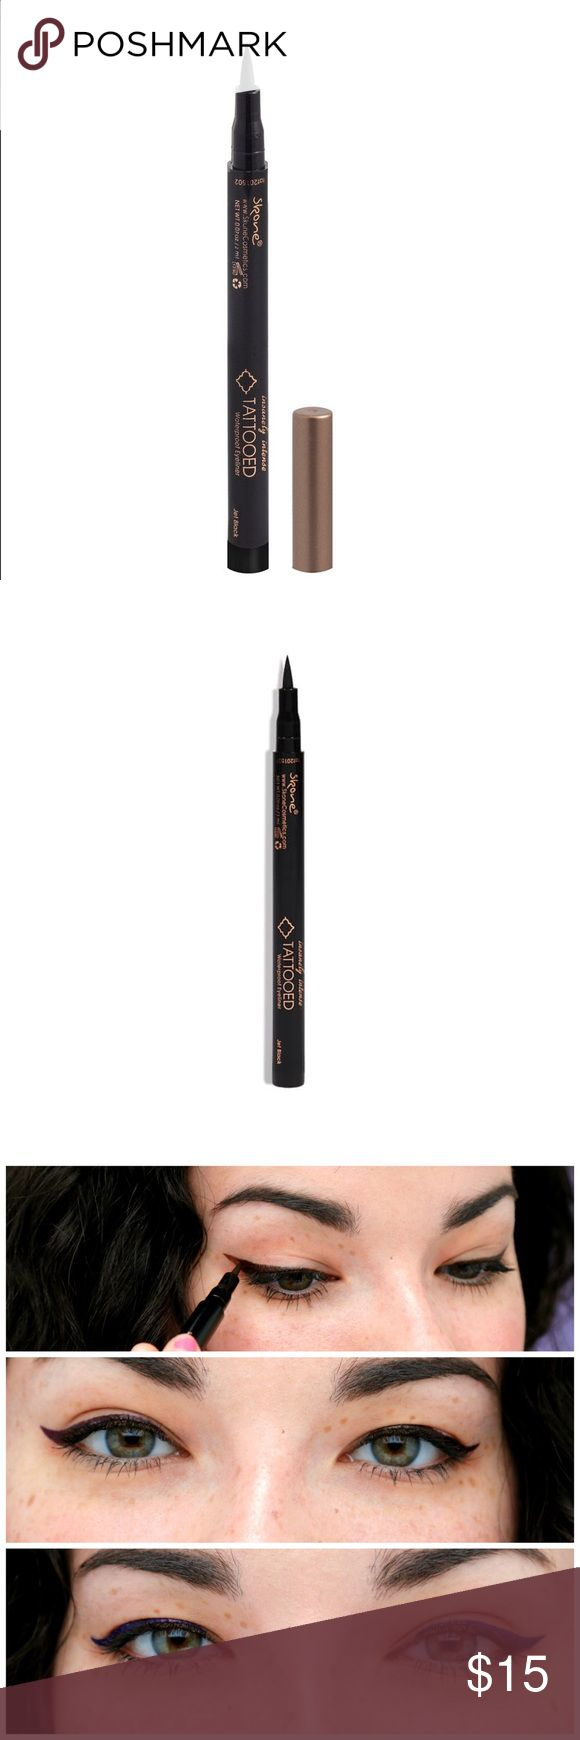 🌹🎊🎊skone insanely intense tattooed eyeliner 🌺 Brand new insanely intense tattooed eyeliner is a liquid waterproof eyeliner with a felt tip pen applicator is perfect for.  Wings, lining your lids, or creating a sexy cat 🐱 eye ,   Pigmented , water proof , and smudge proof liner that stays on all day !!!!🎉🎉🎉🎉🎉 skone Makeup Eyeliner